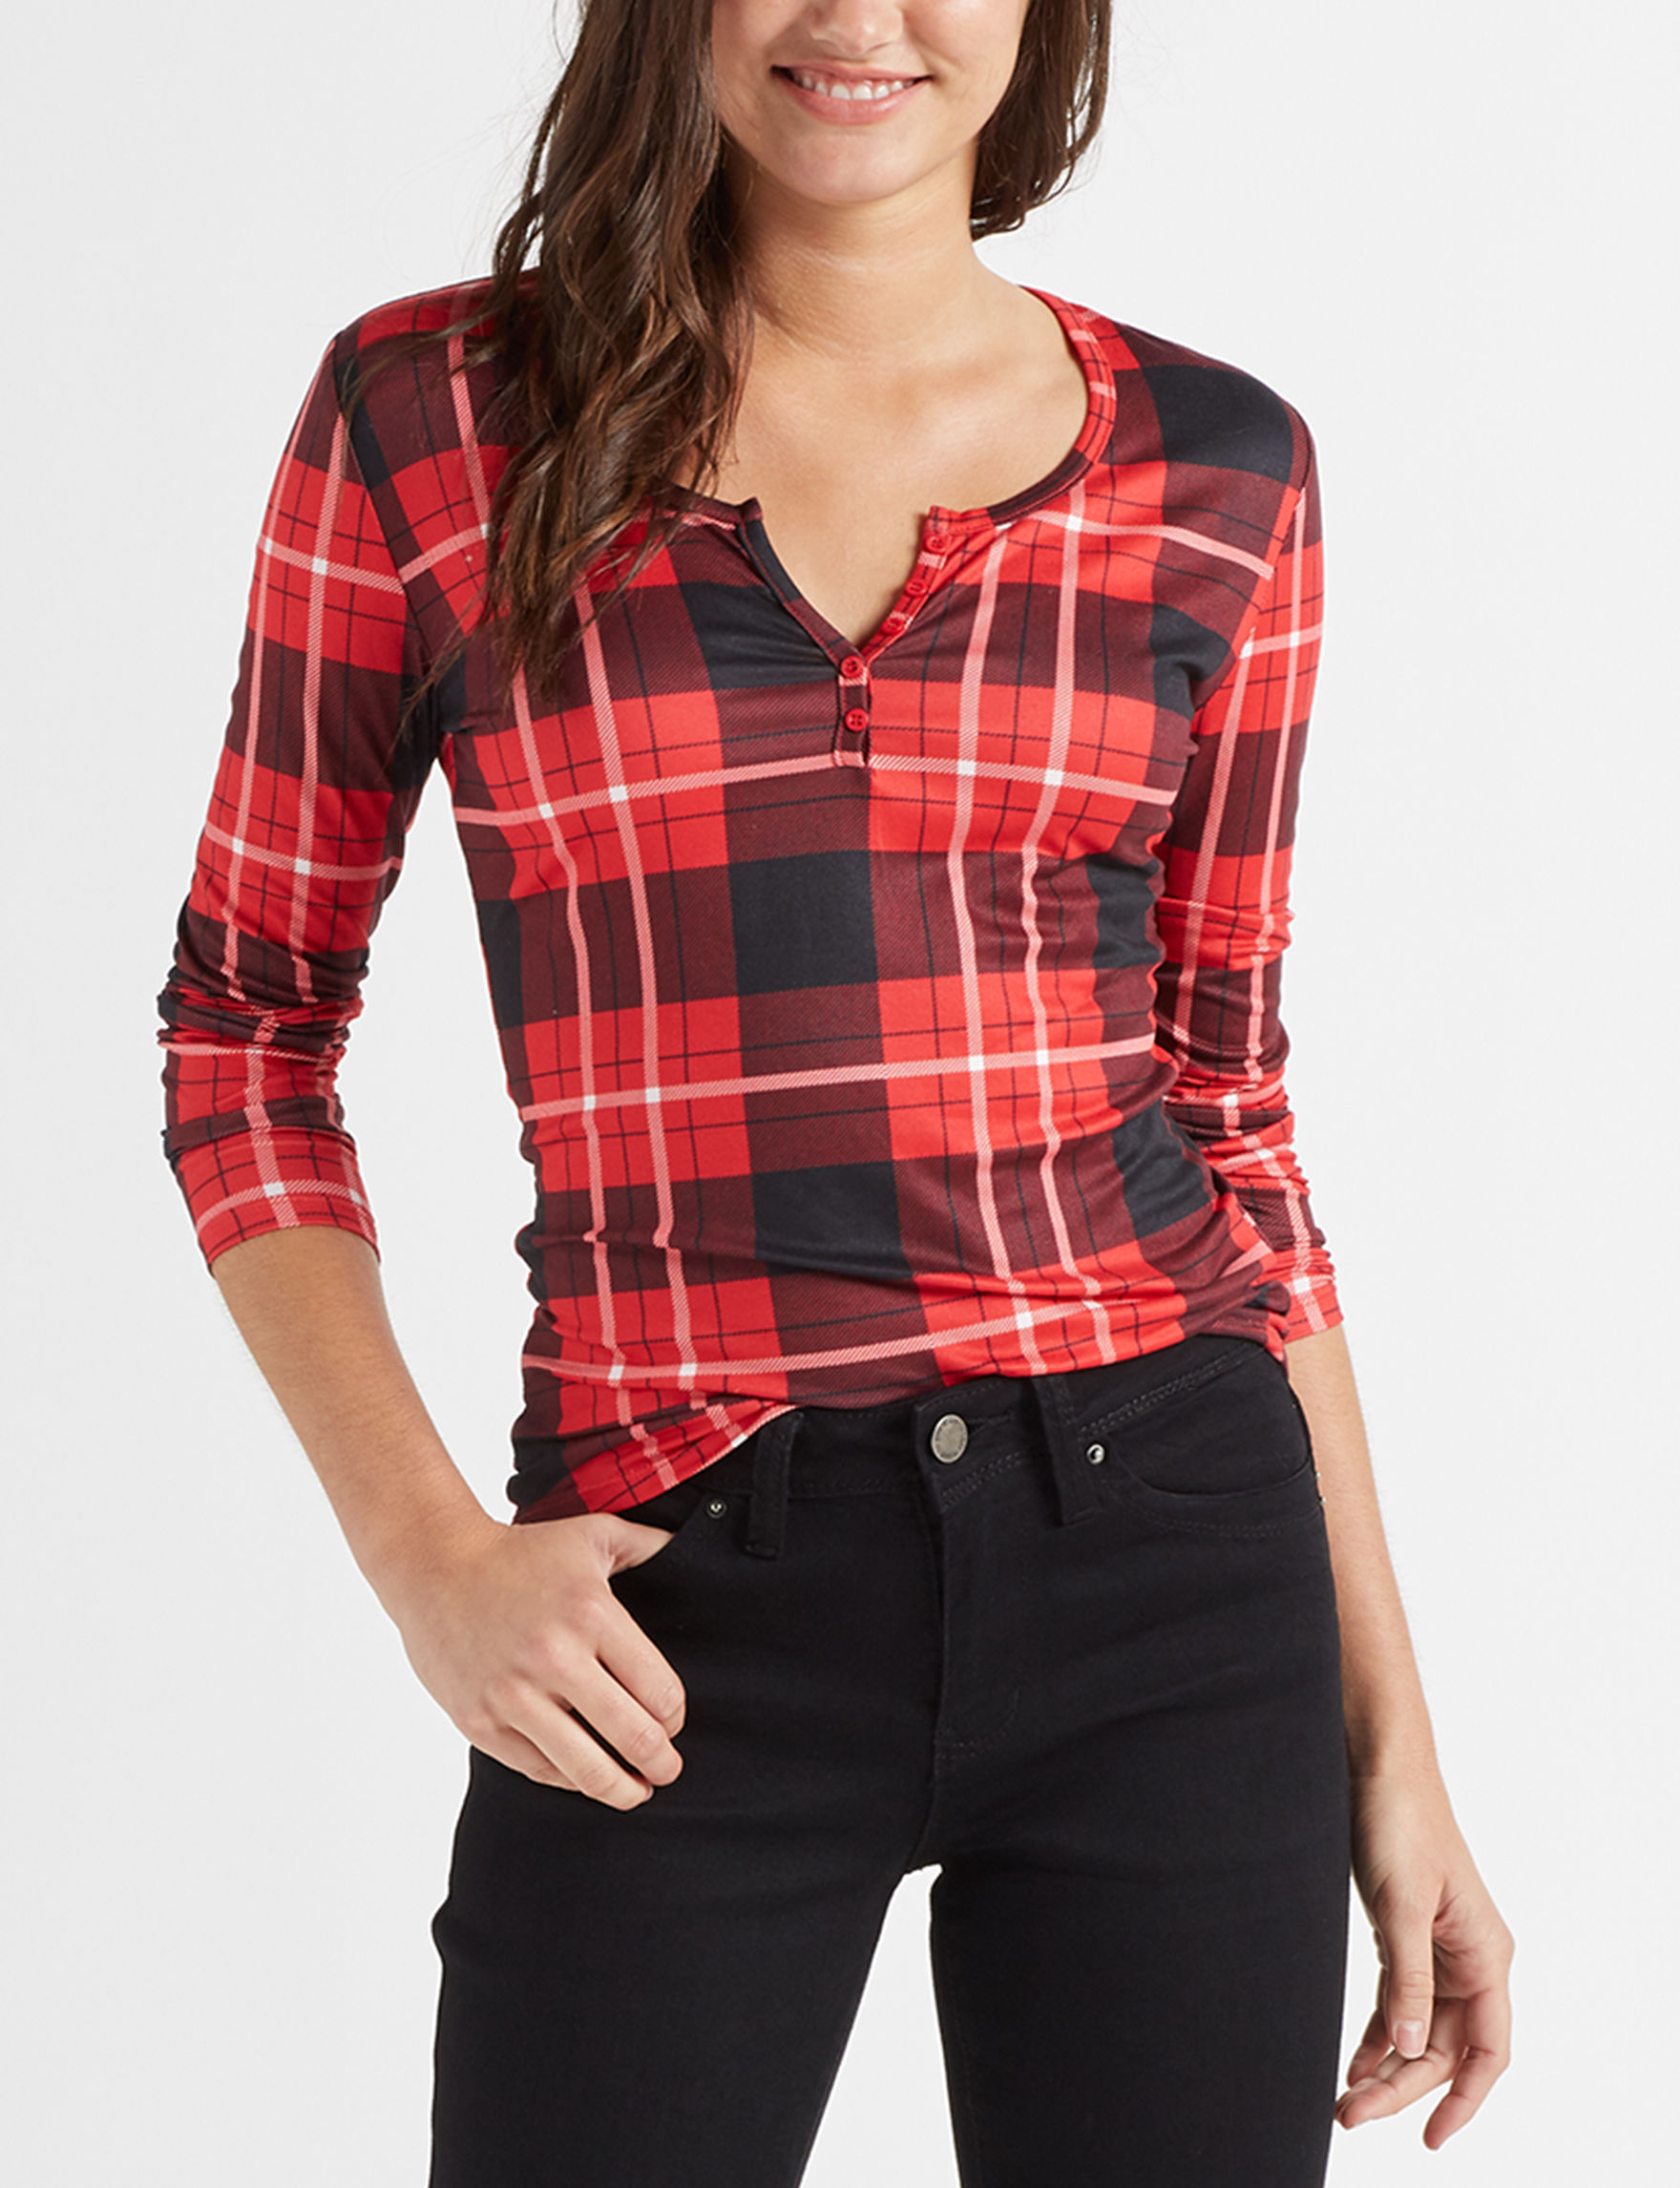 Wishful Park Red Plaid Shirts & Blouses